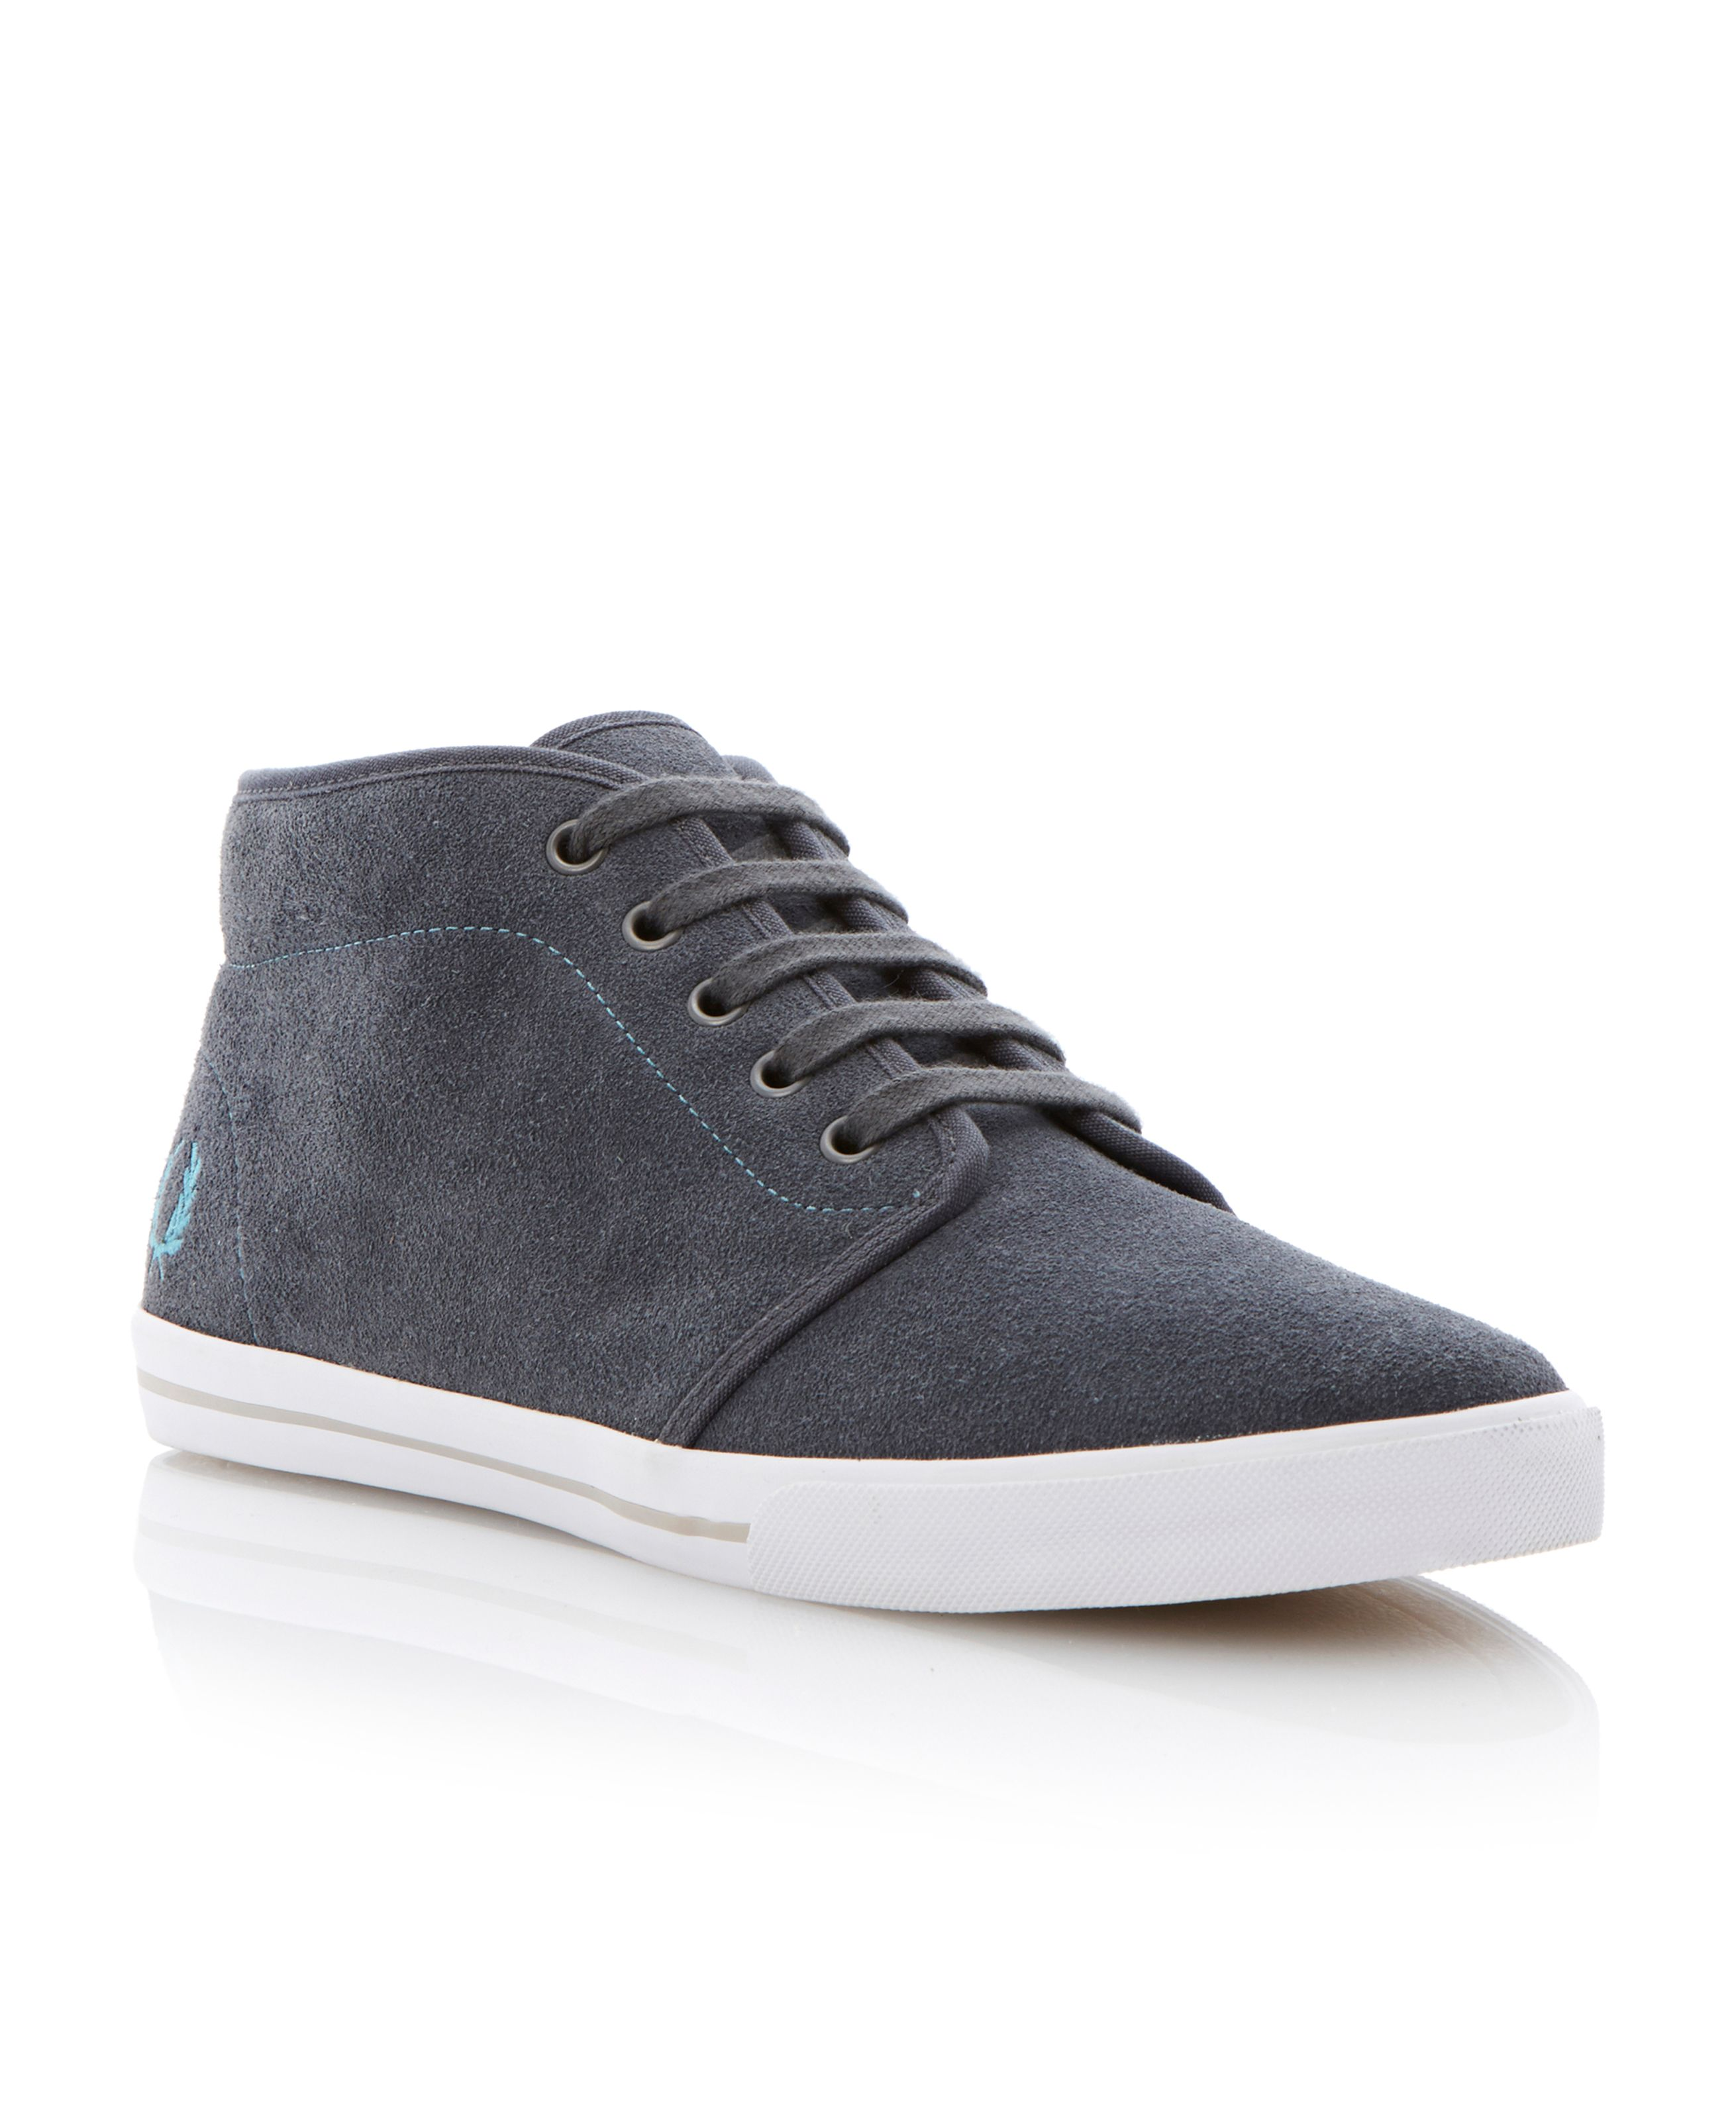 Fletcher suede lace up hi tops